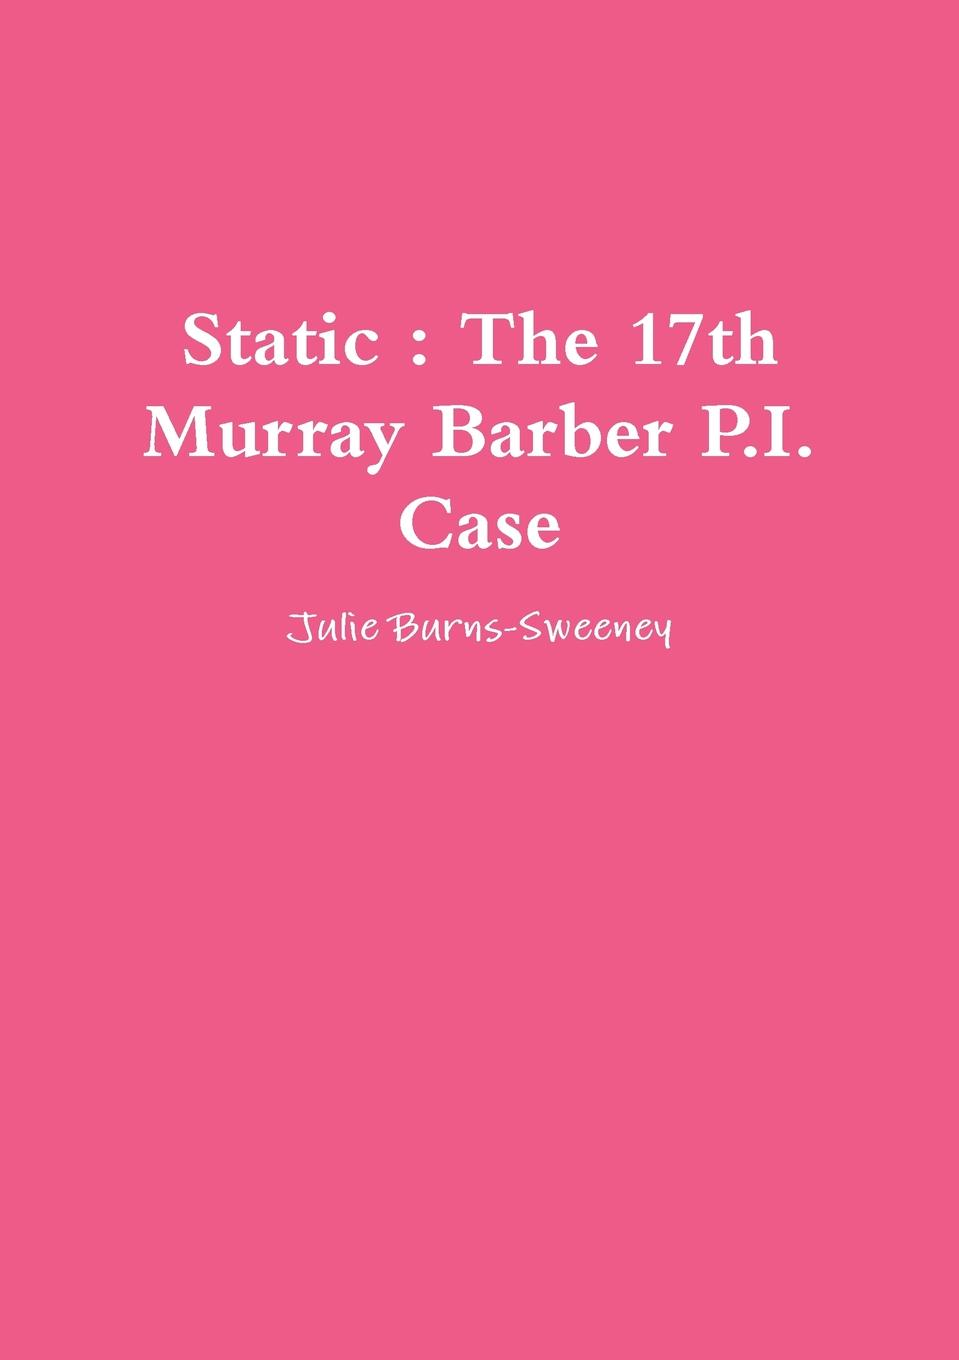 Static. The 17th Murray Barber P.I. Case